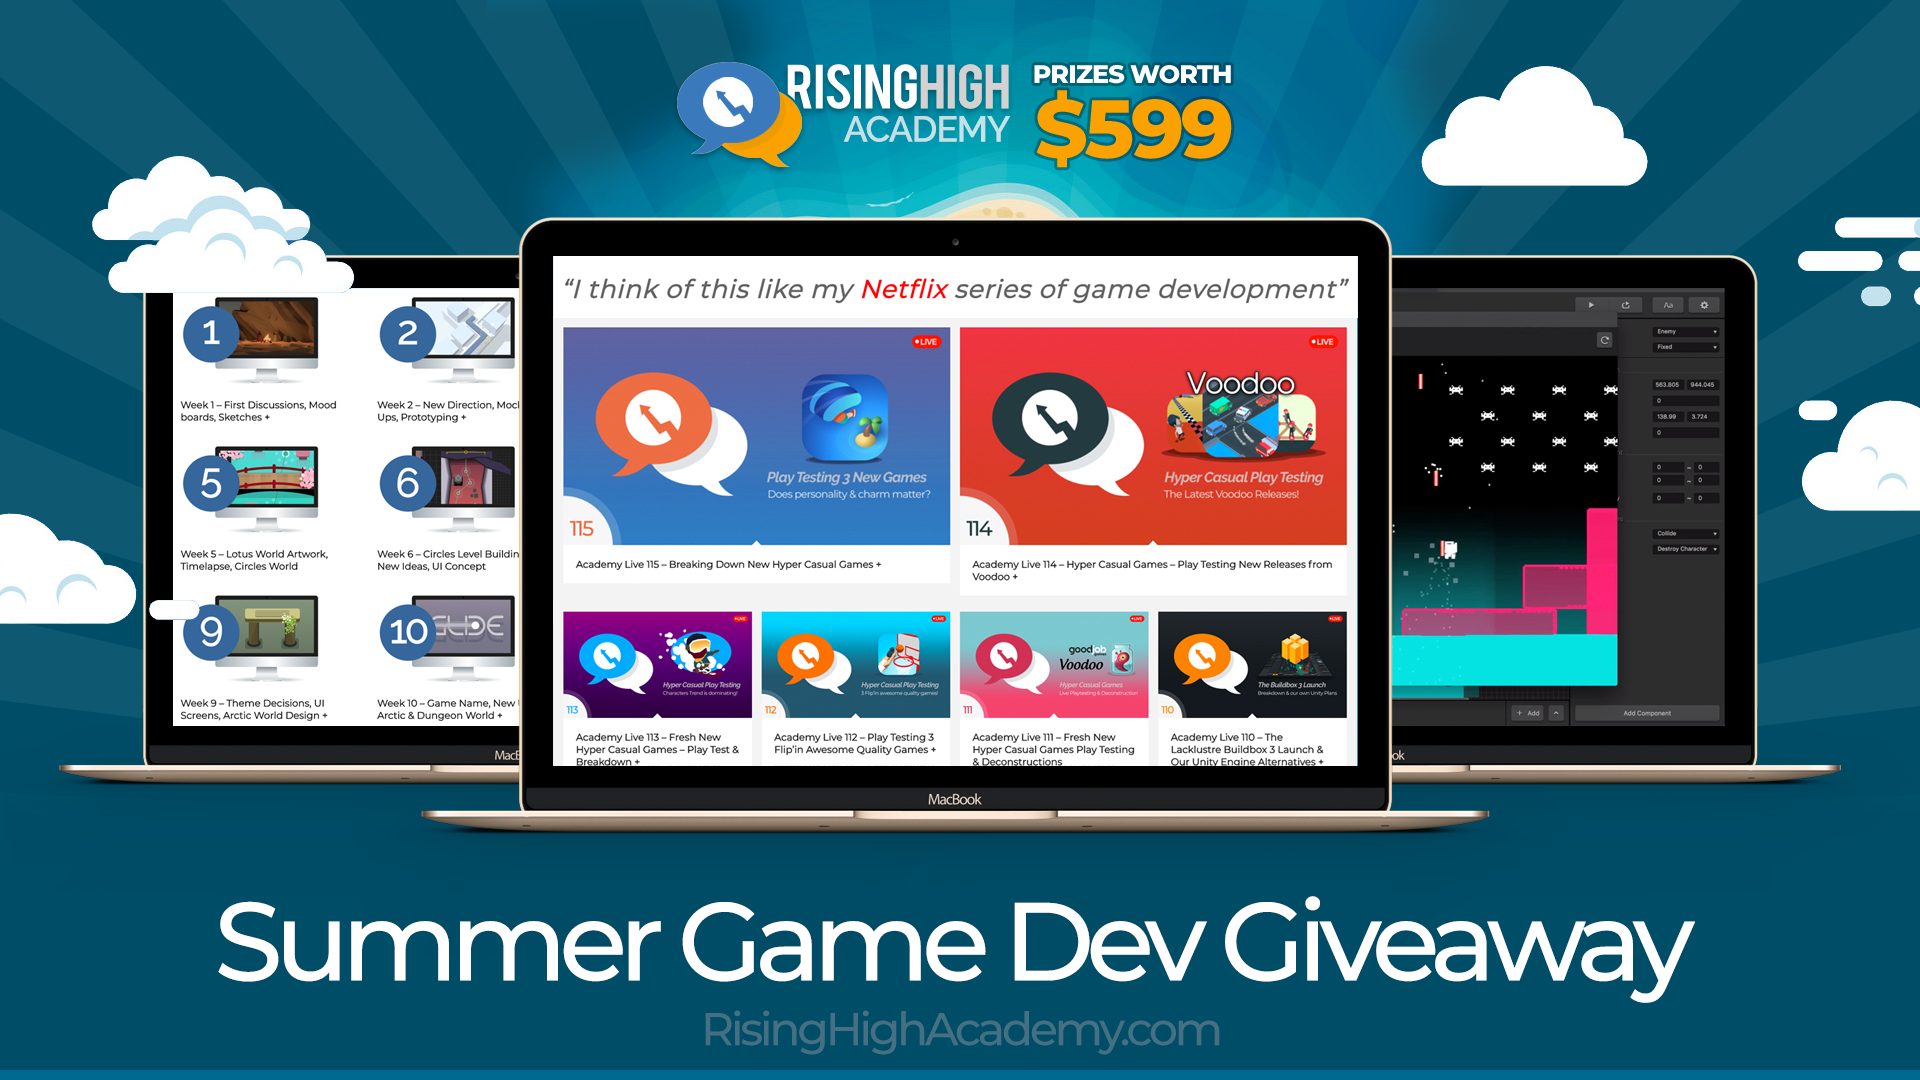 Summer Game Dev Giveaway